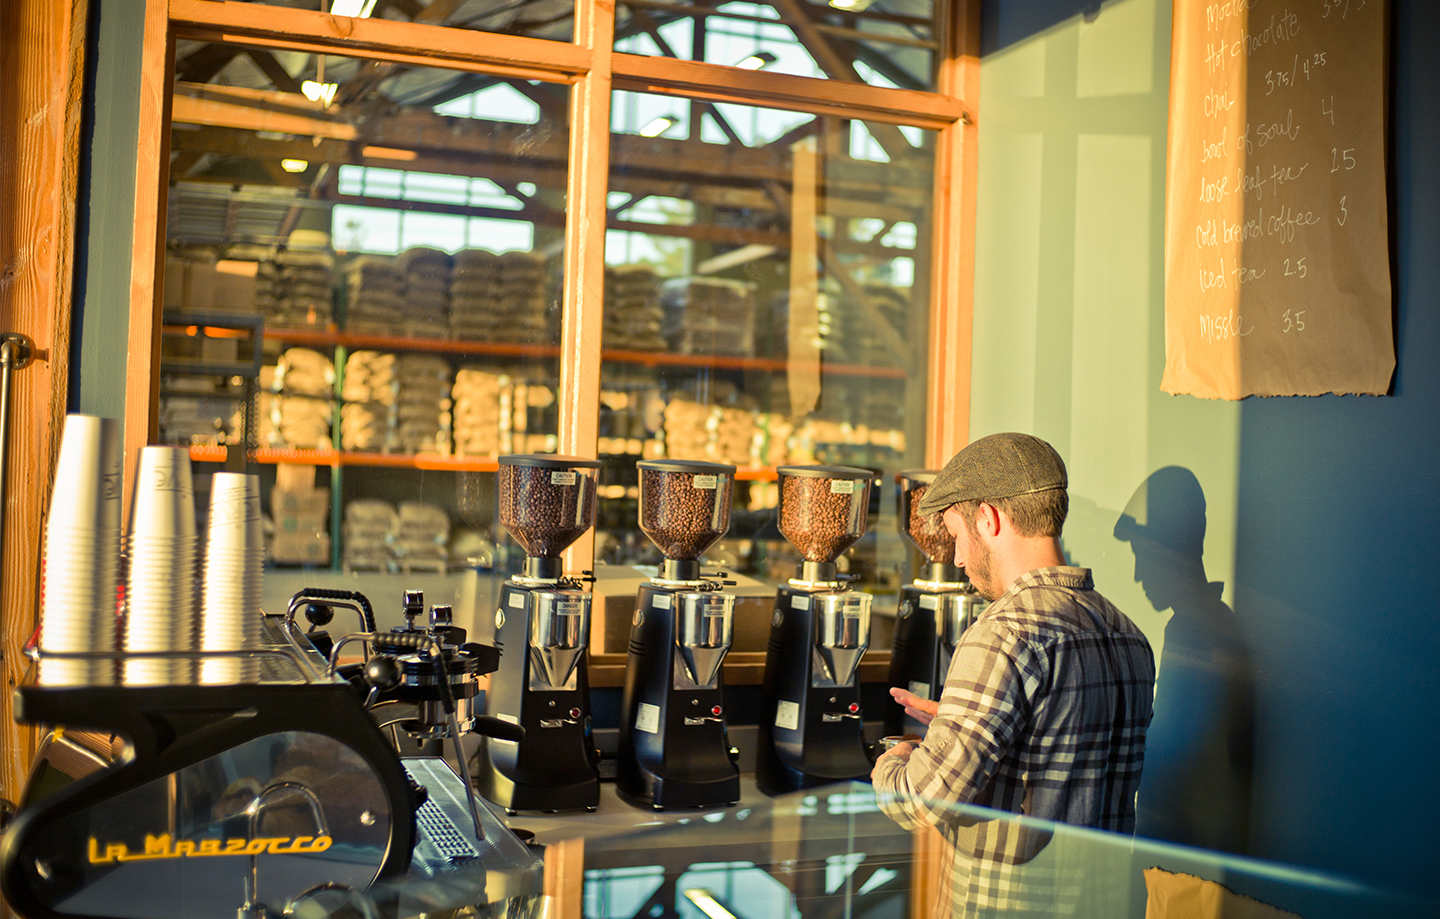 Verve Coffe Roasters Headquarters Barista